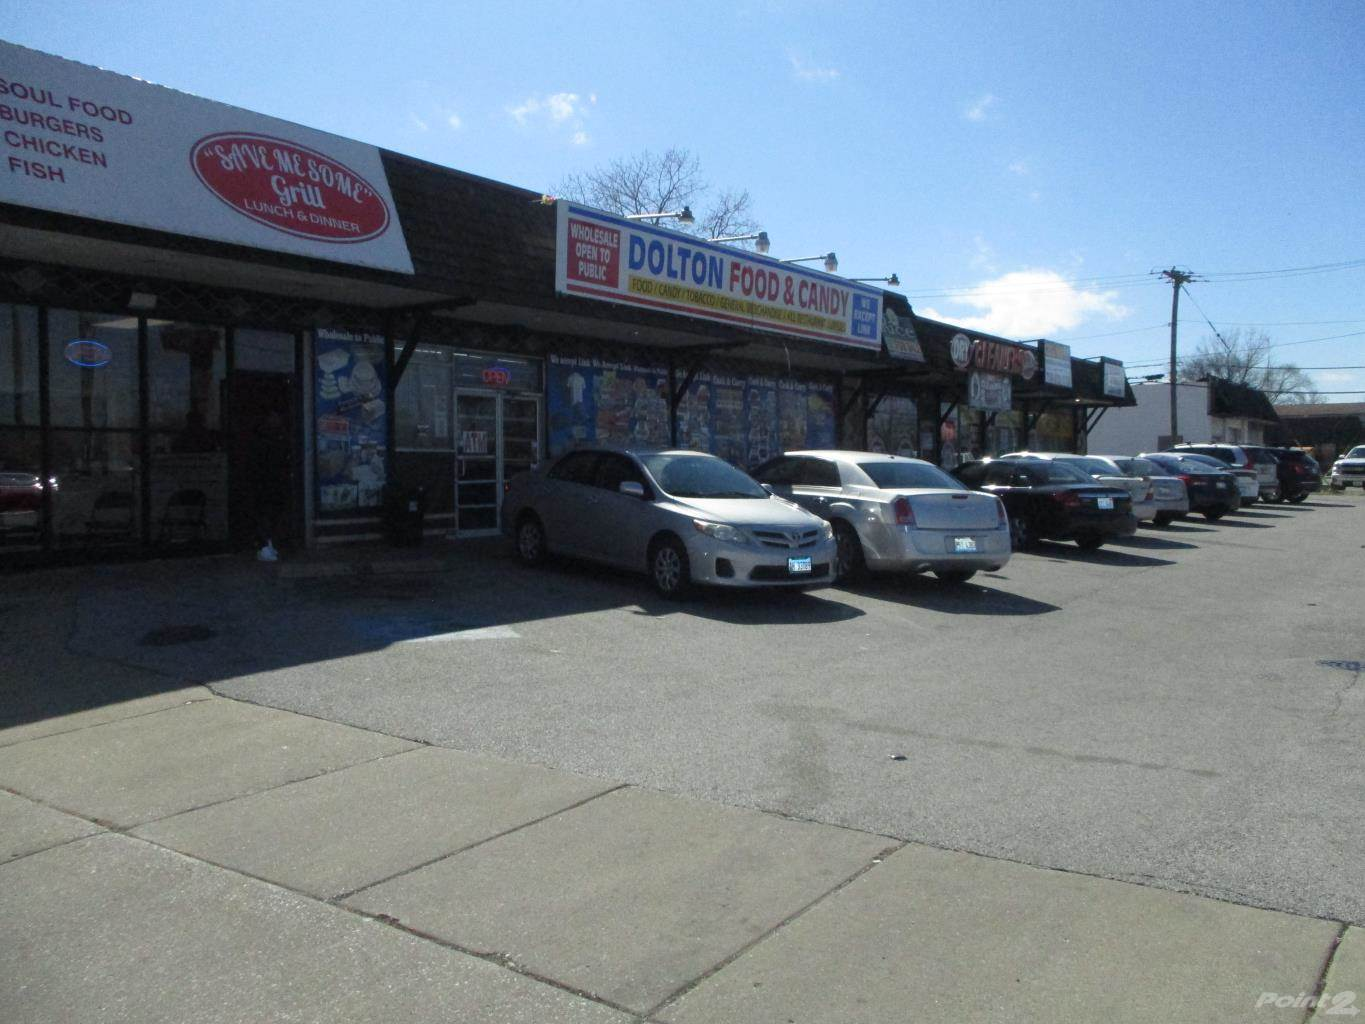 Commercial for sale in 817 E 142nd Street, Dolton, Illinois ,60419